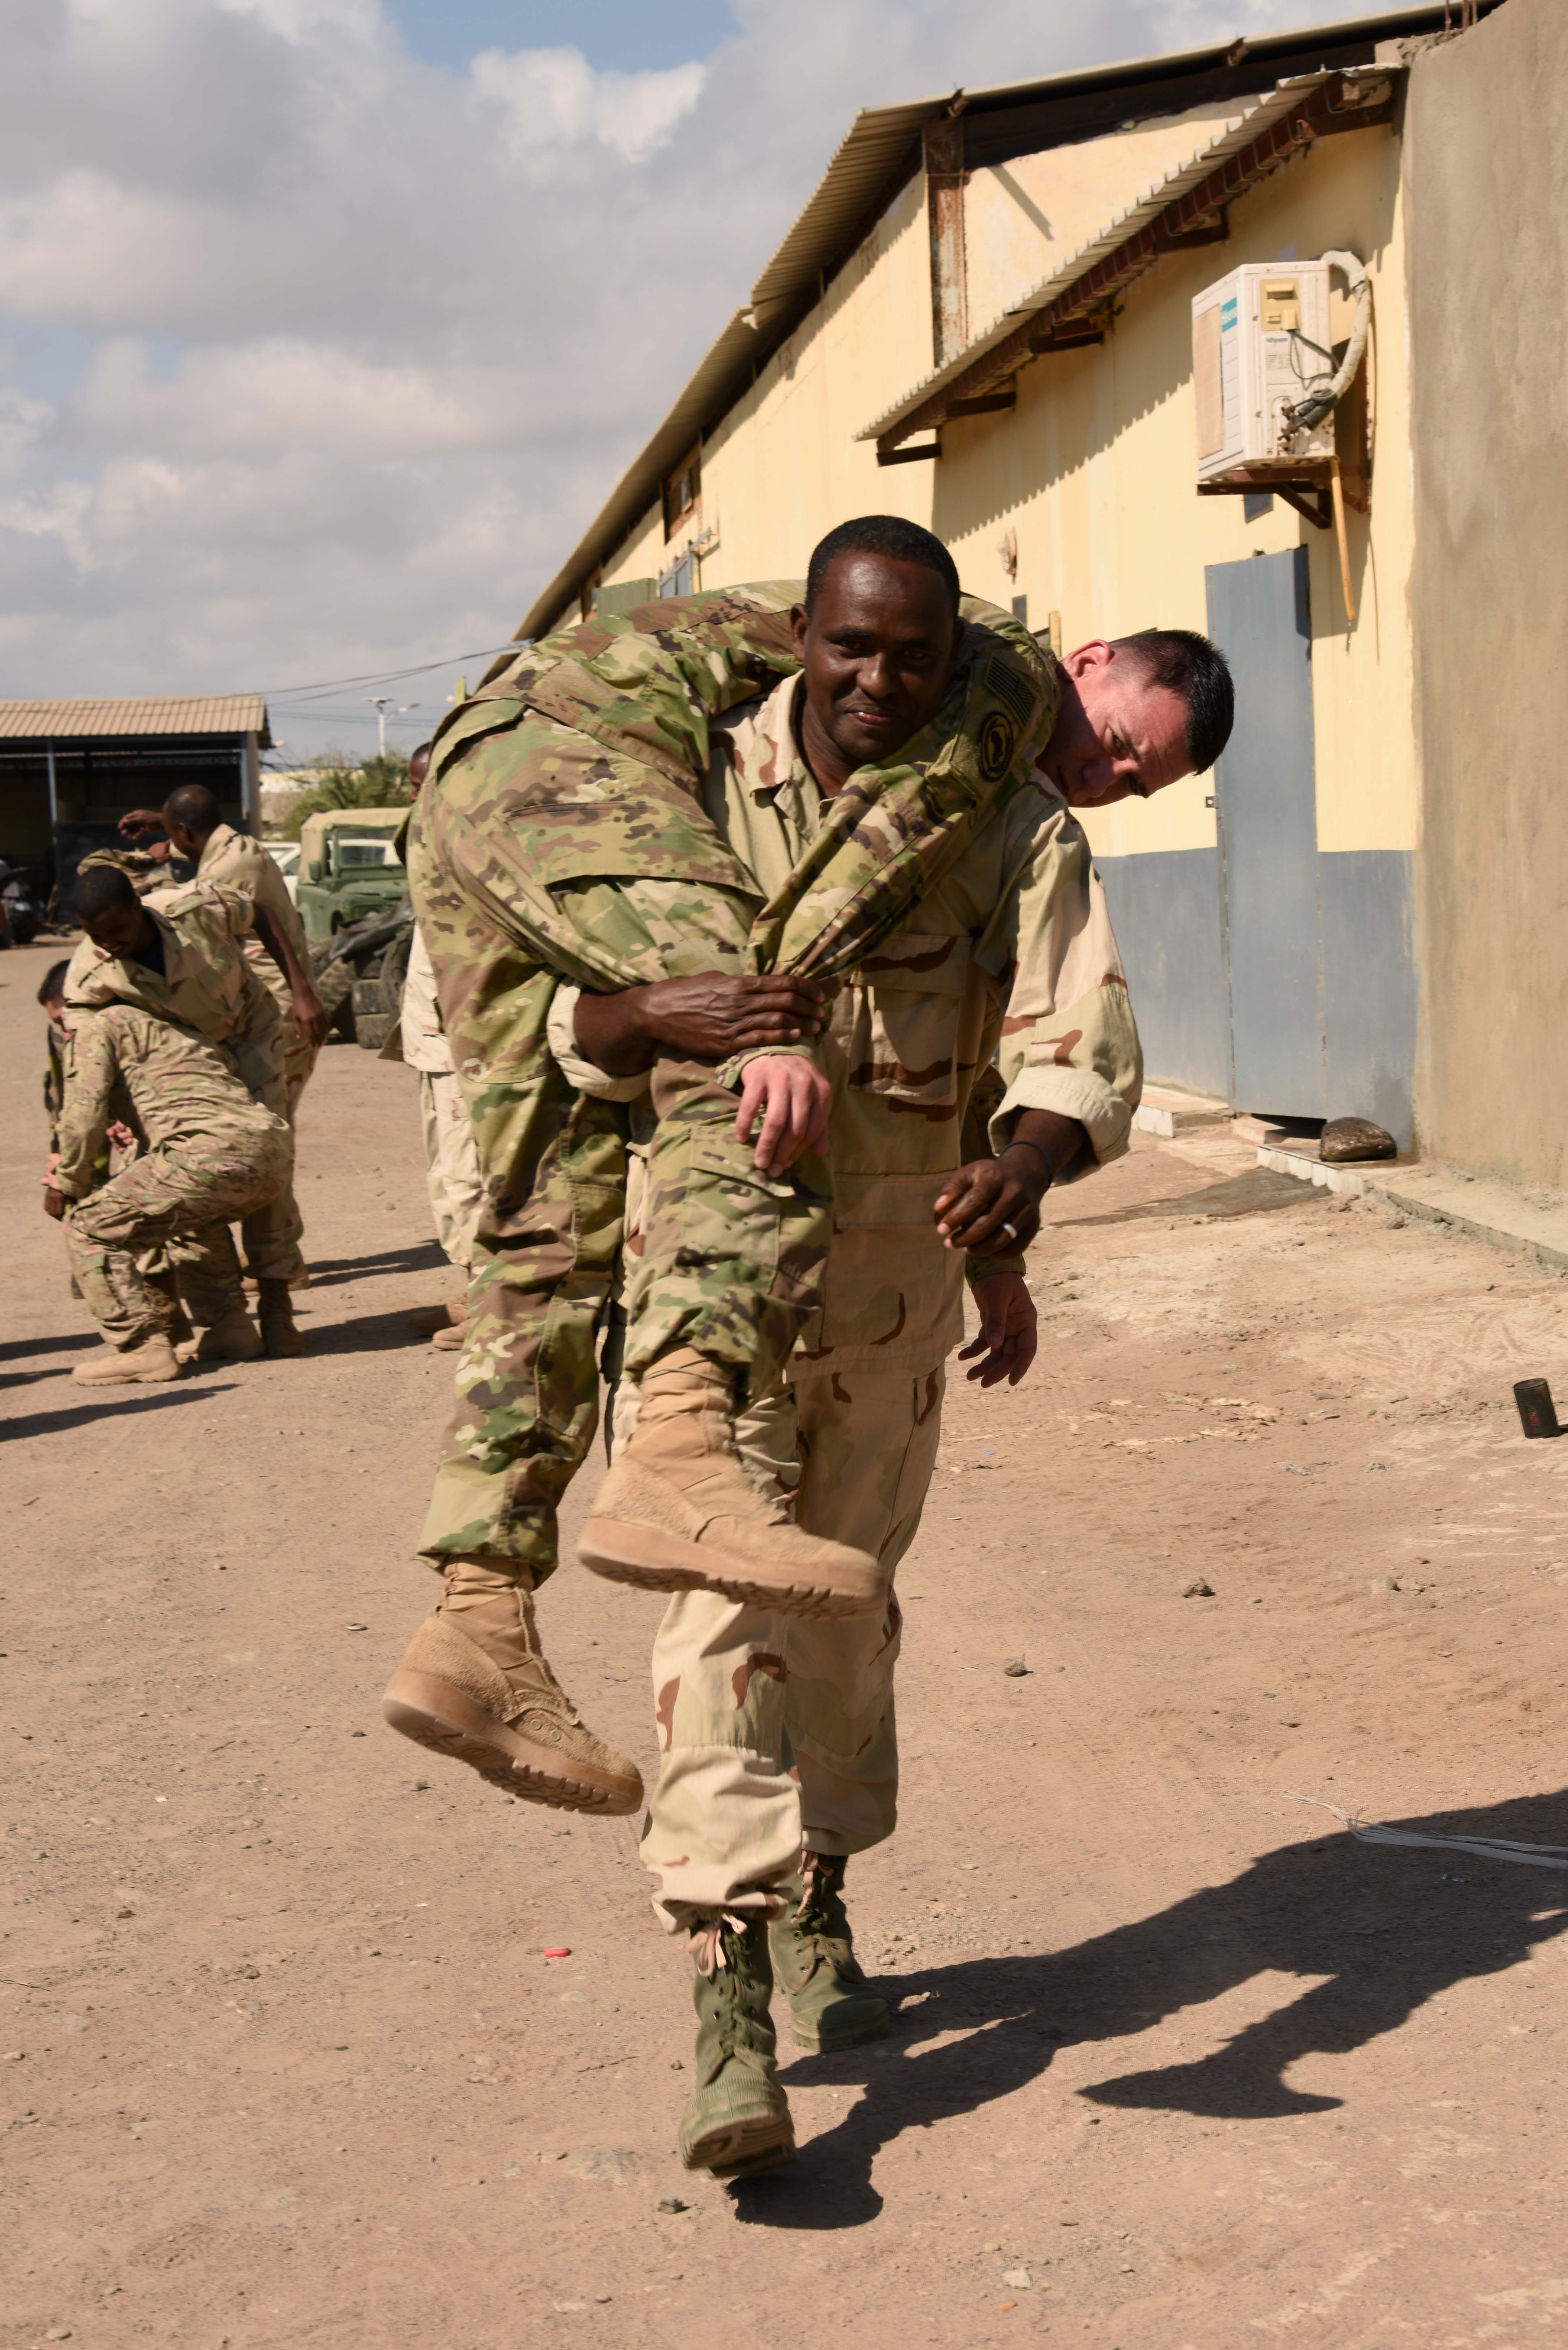 A Djiboutian Armed Forces (FAD) soldier fireman carries U.S. Army Spc. Brian Buchanan, 6th Squadron, 8th Cavalry Regiment combat medic, during a Combat Lifesaver Course at the Central Management of Materials and Engineering Services compound, Djibouti, Mar. 2, 2016. FAD soldiers learned multiple types of carries to evacuate wounded from the battlefield while also maintaining security. (U.S. Air Force photo by Staff Sgt. Victoria Sneed)